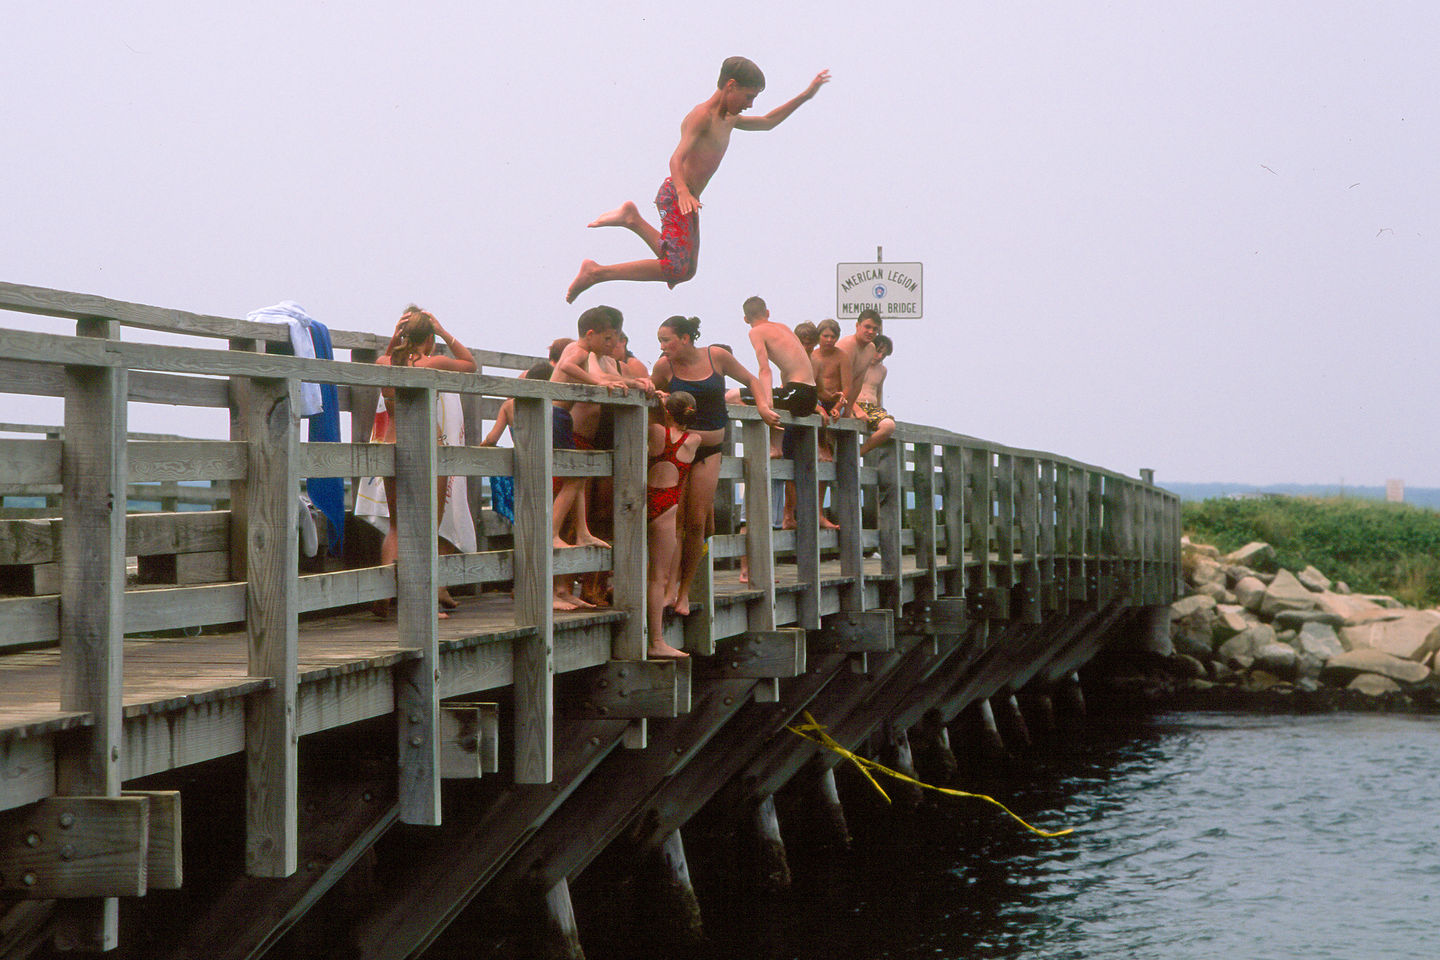 Tommy jumping off Memorial Bridge